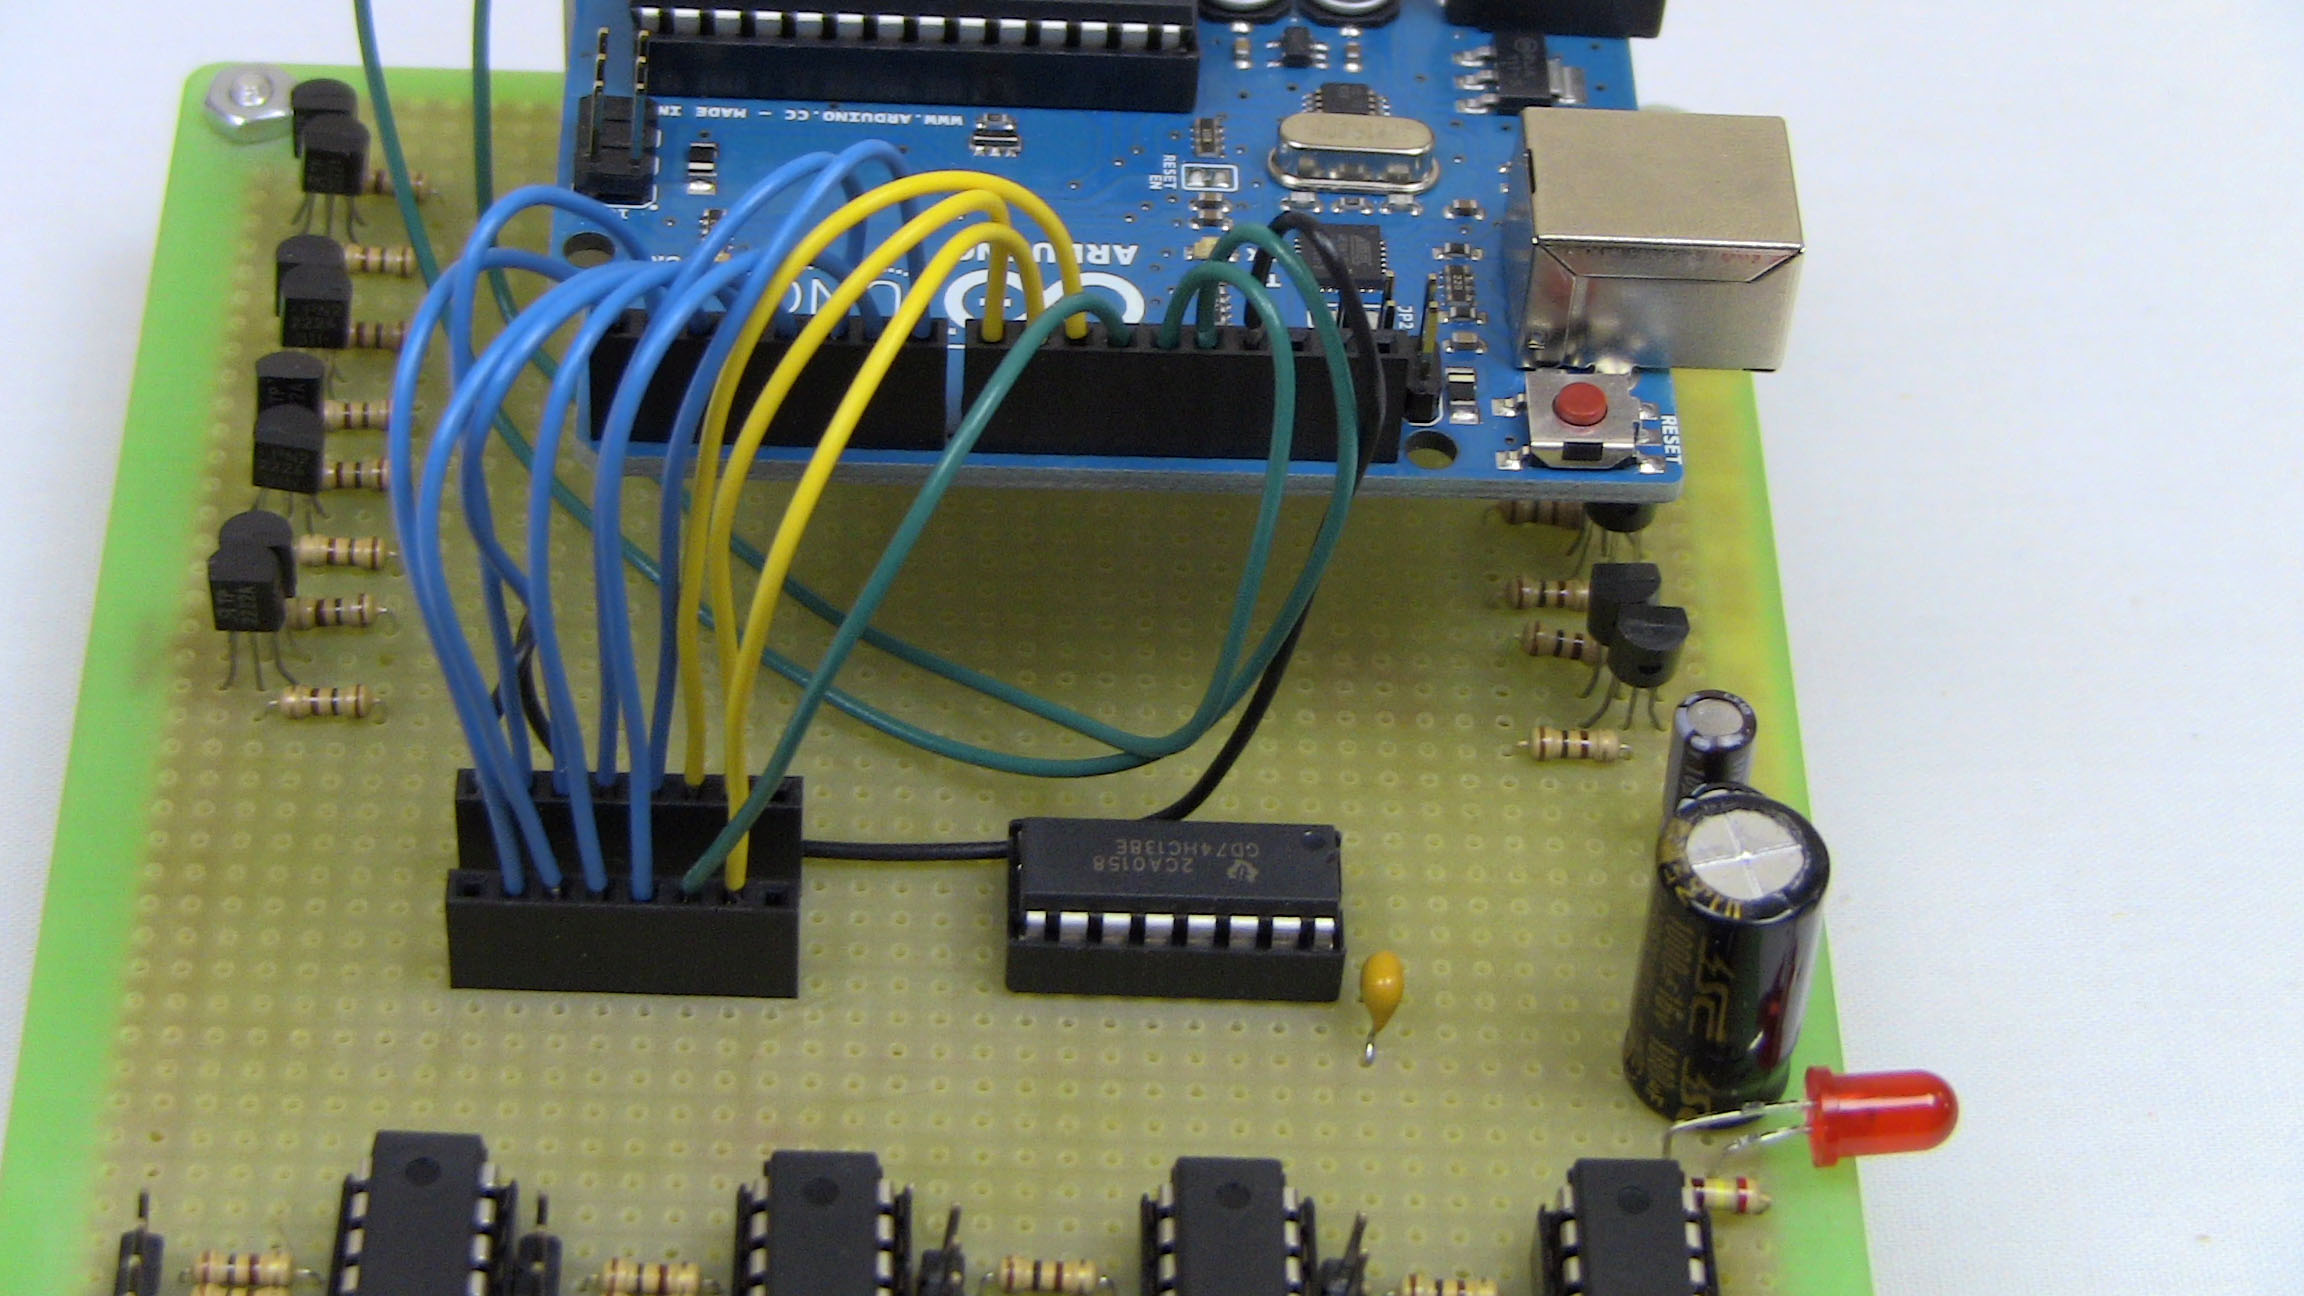 8x8x8 Led Cube Cable Assembly Pyroelectro News Projects Tutorials Simple Pic Usb Interface Schematic Alright Fine One More Thing To Do Connect The 5v Pin Of Arduino Power Bus On Protoboard Use A Red Wire Please